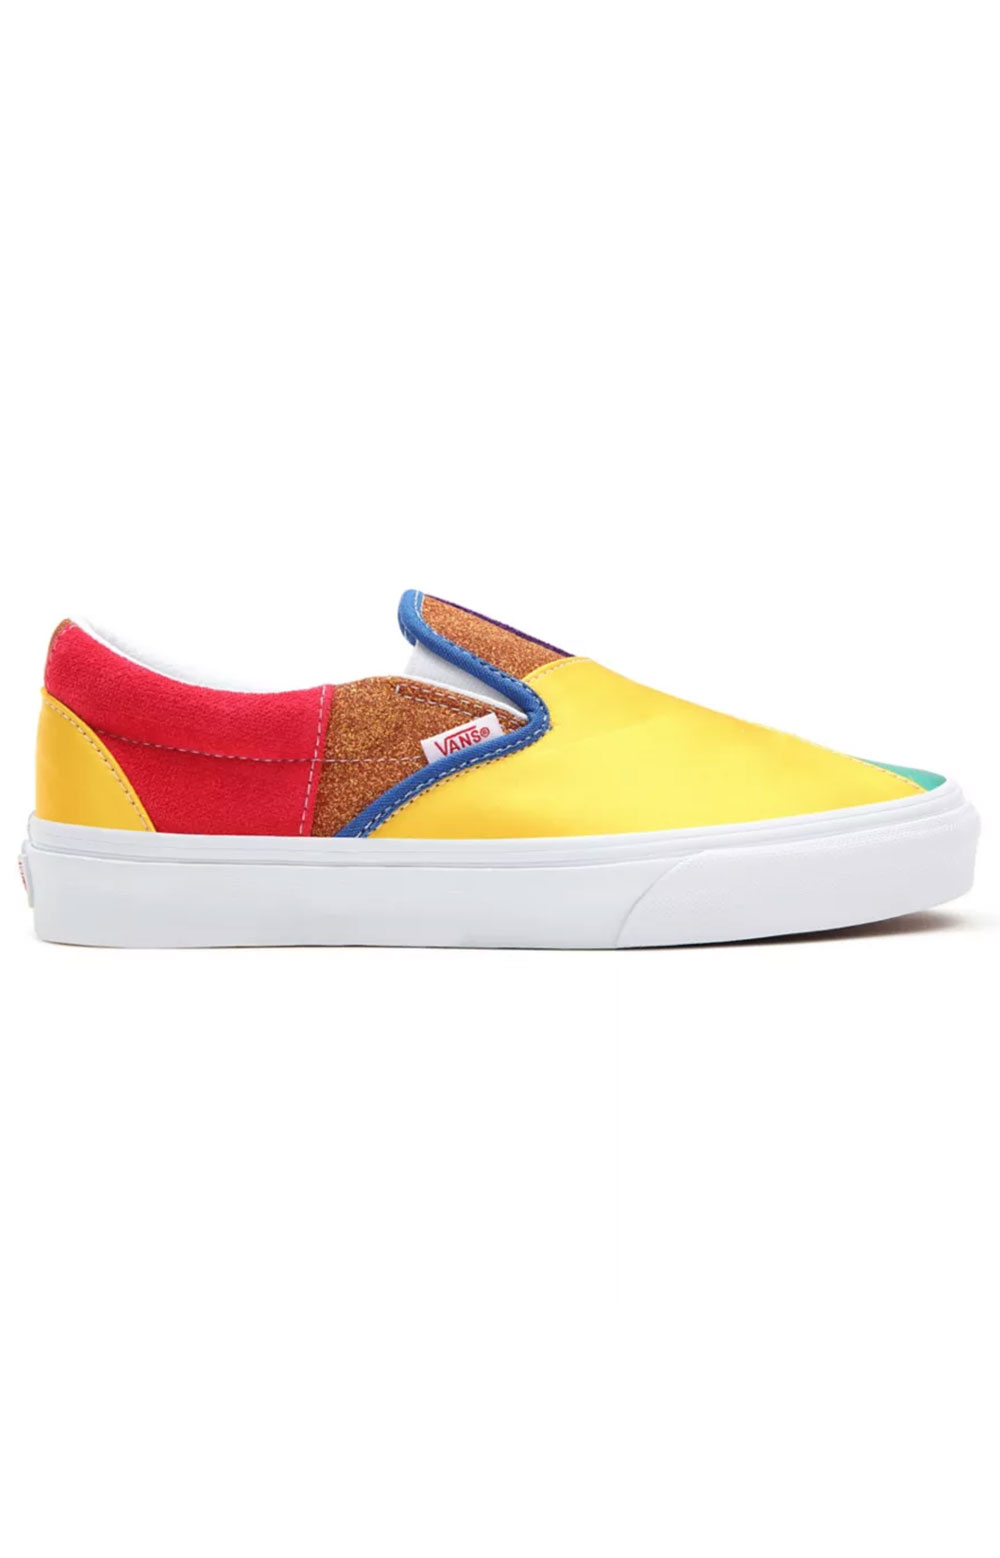 (3TB44B) Pride Classic Slip-On Shoes - Patchwork